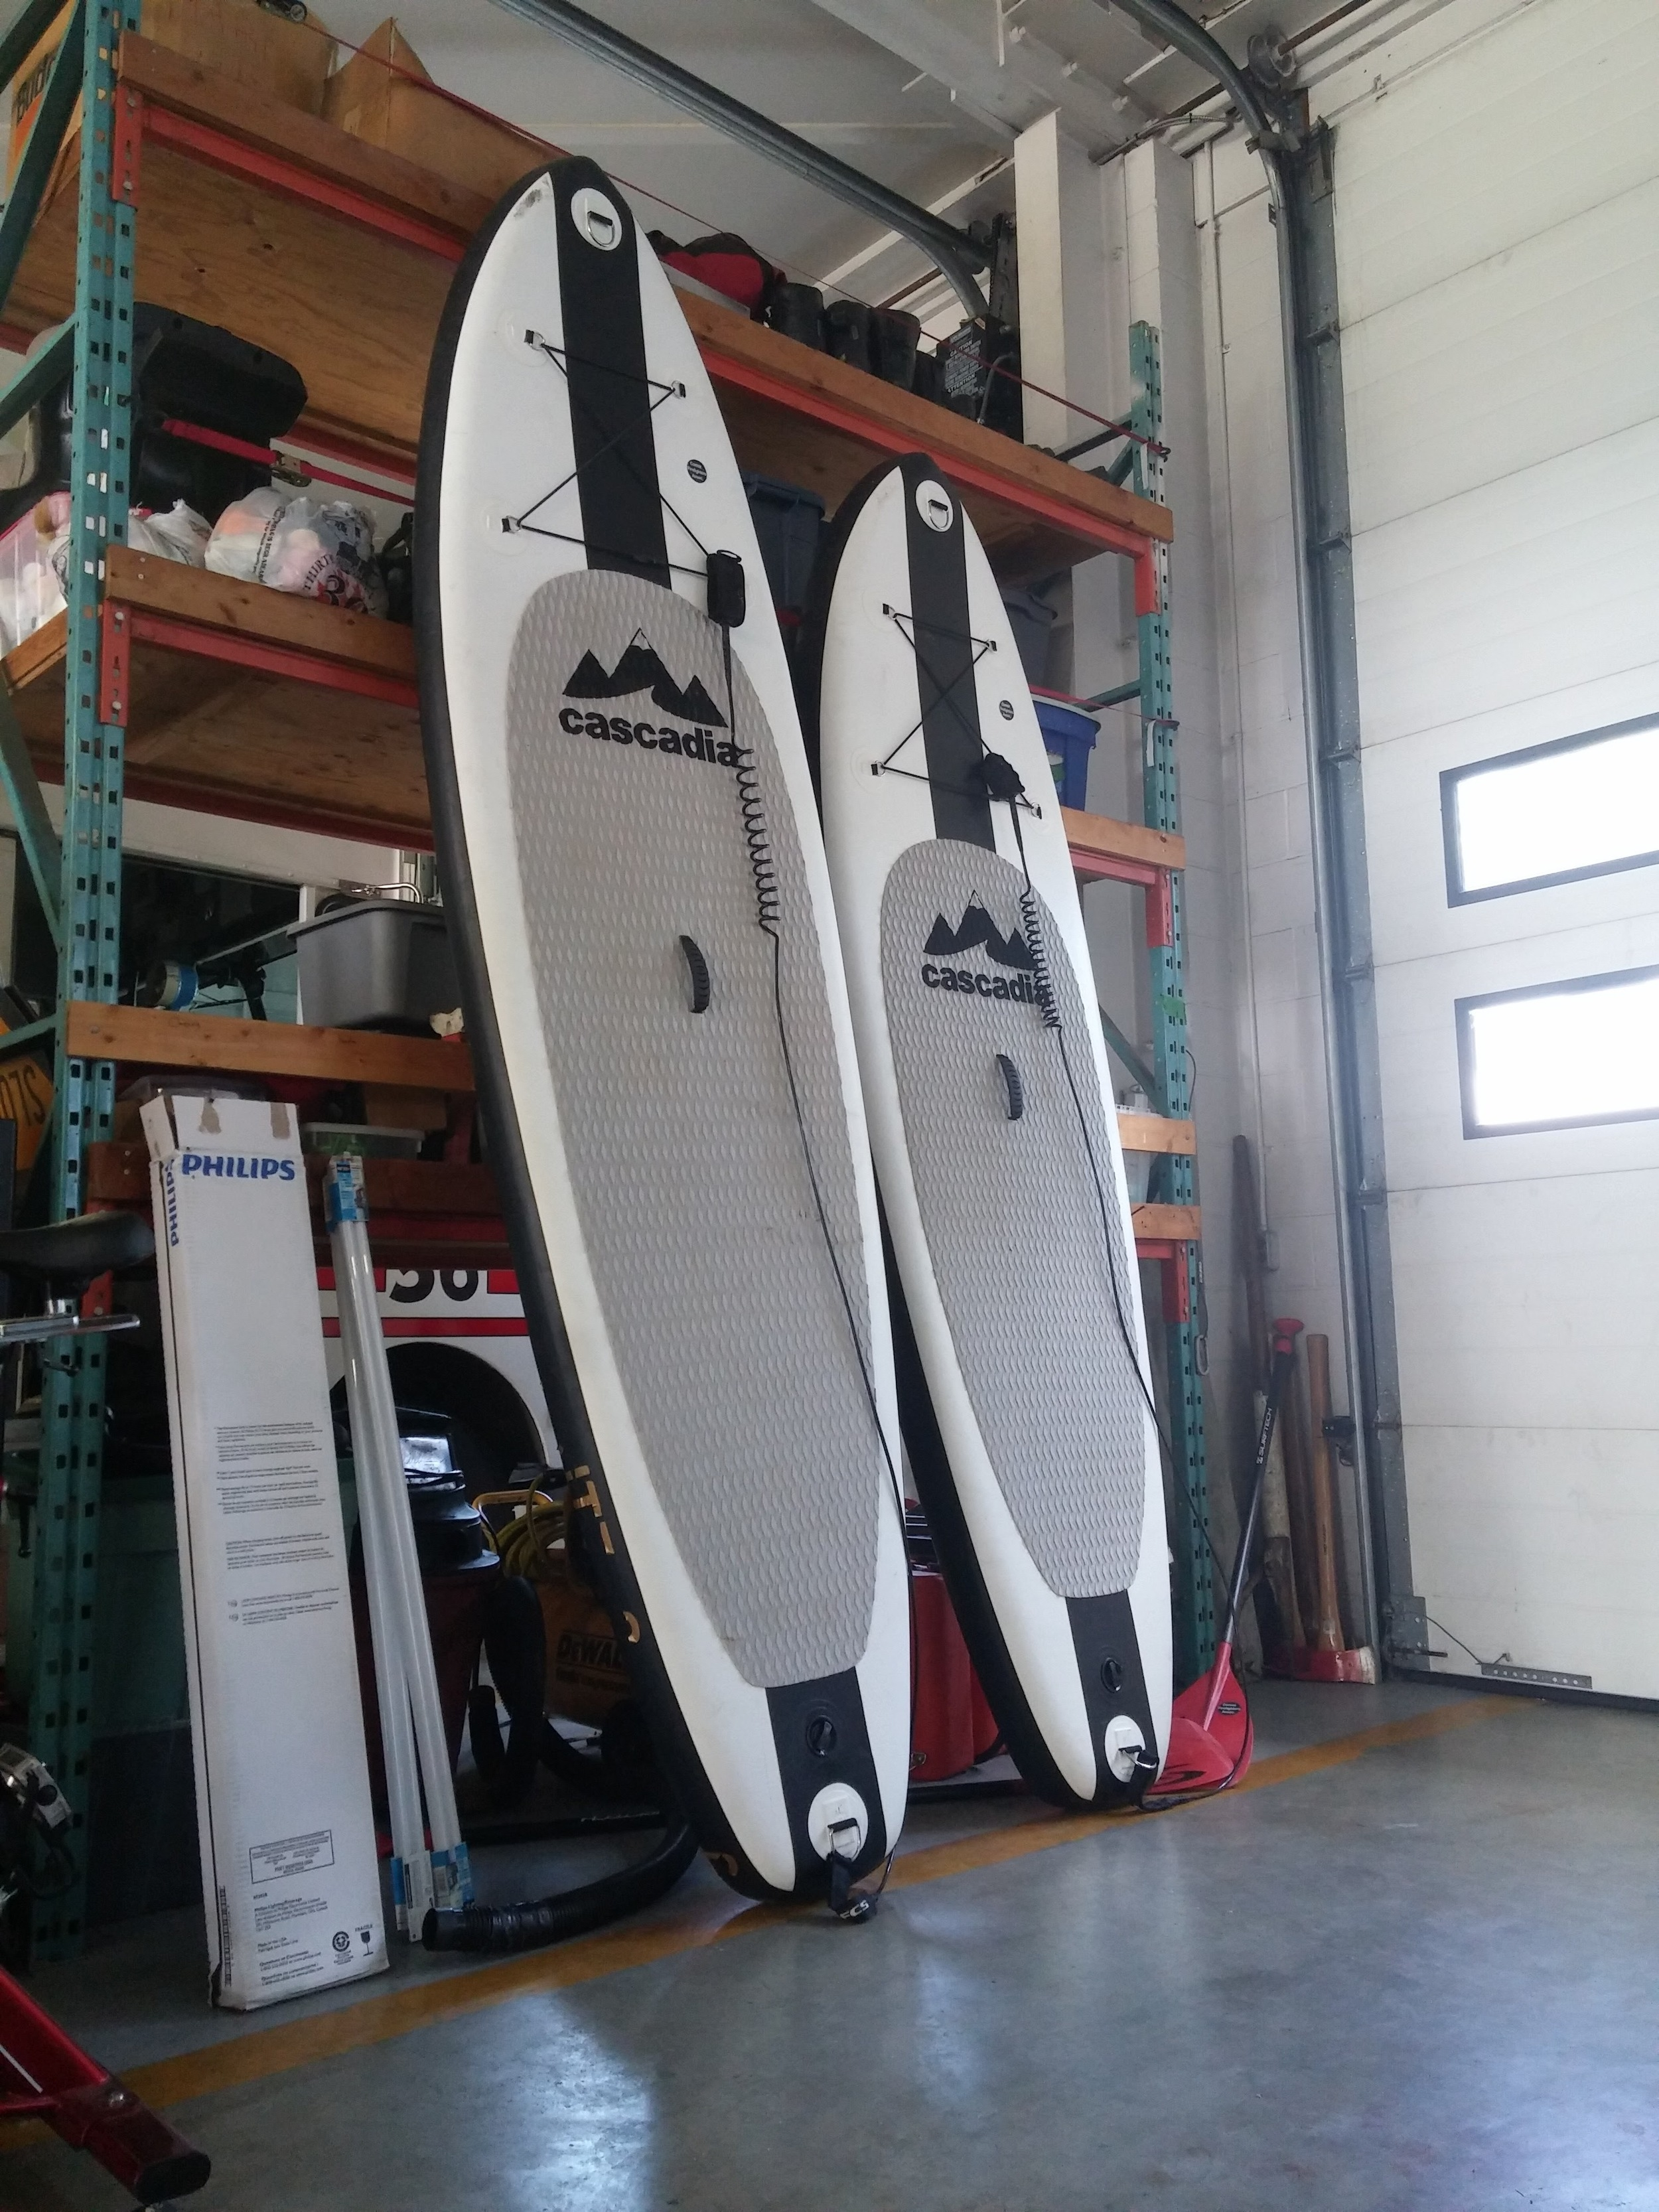 comox-fire-rescue-stand-up-paddleboards.jpg